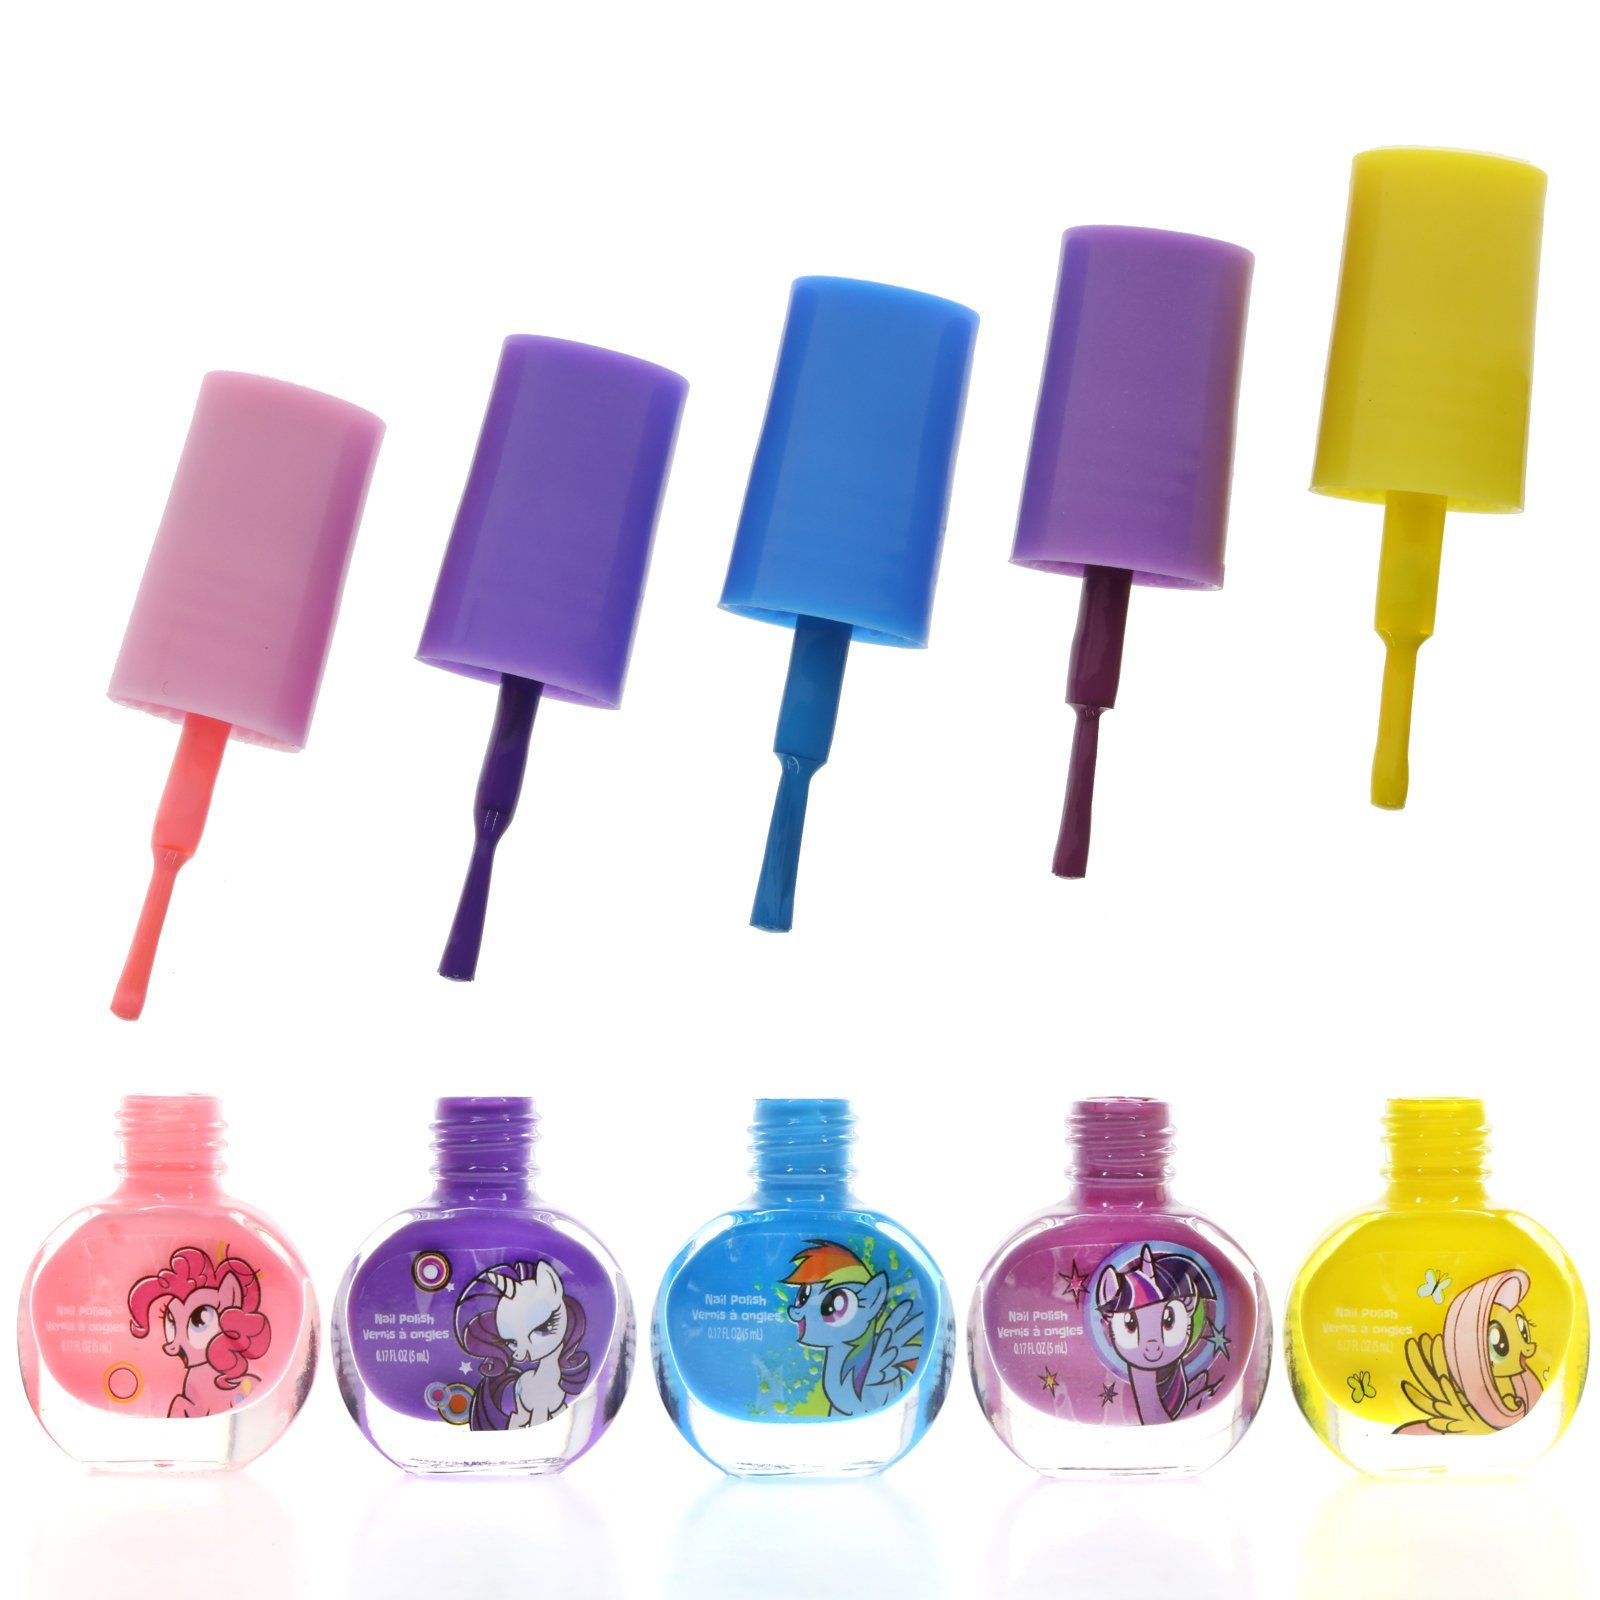 TownleyGirl My Little Pony Super Sparkly Cosmetic Set with lip gloss